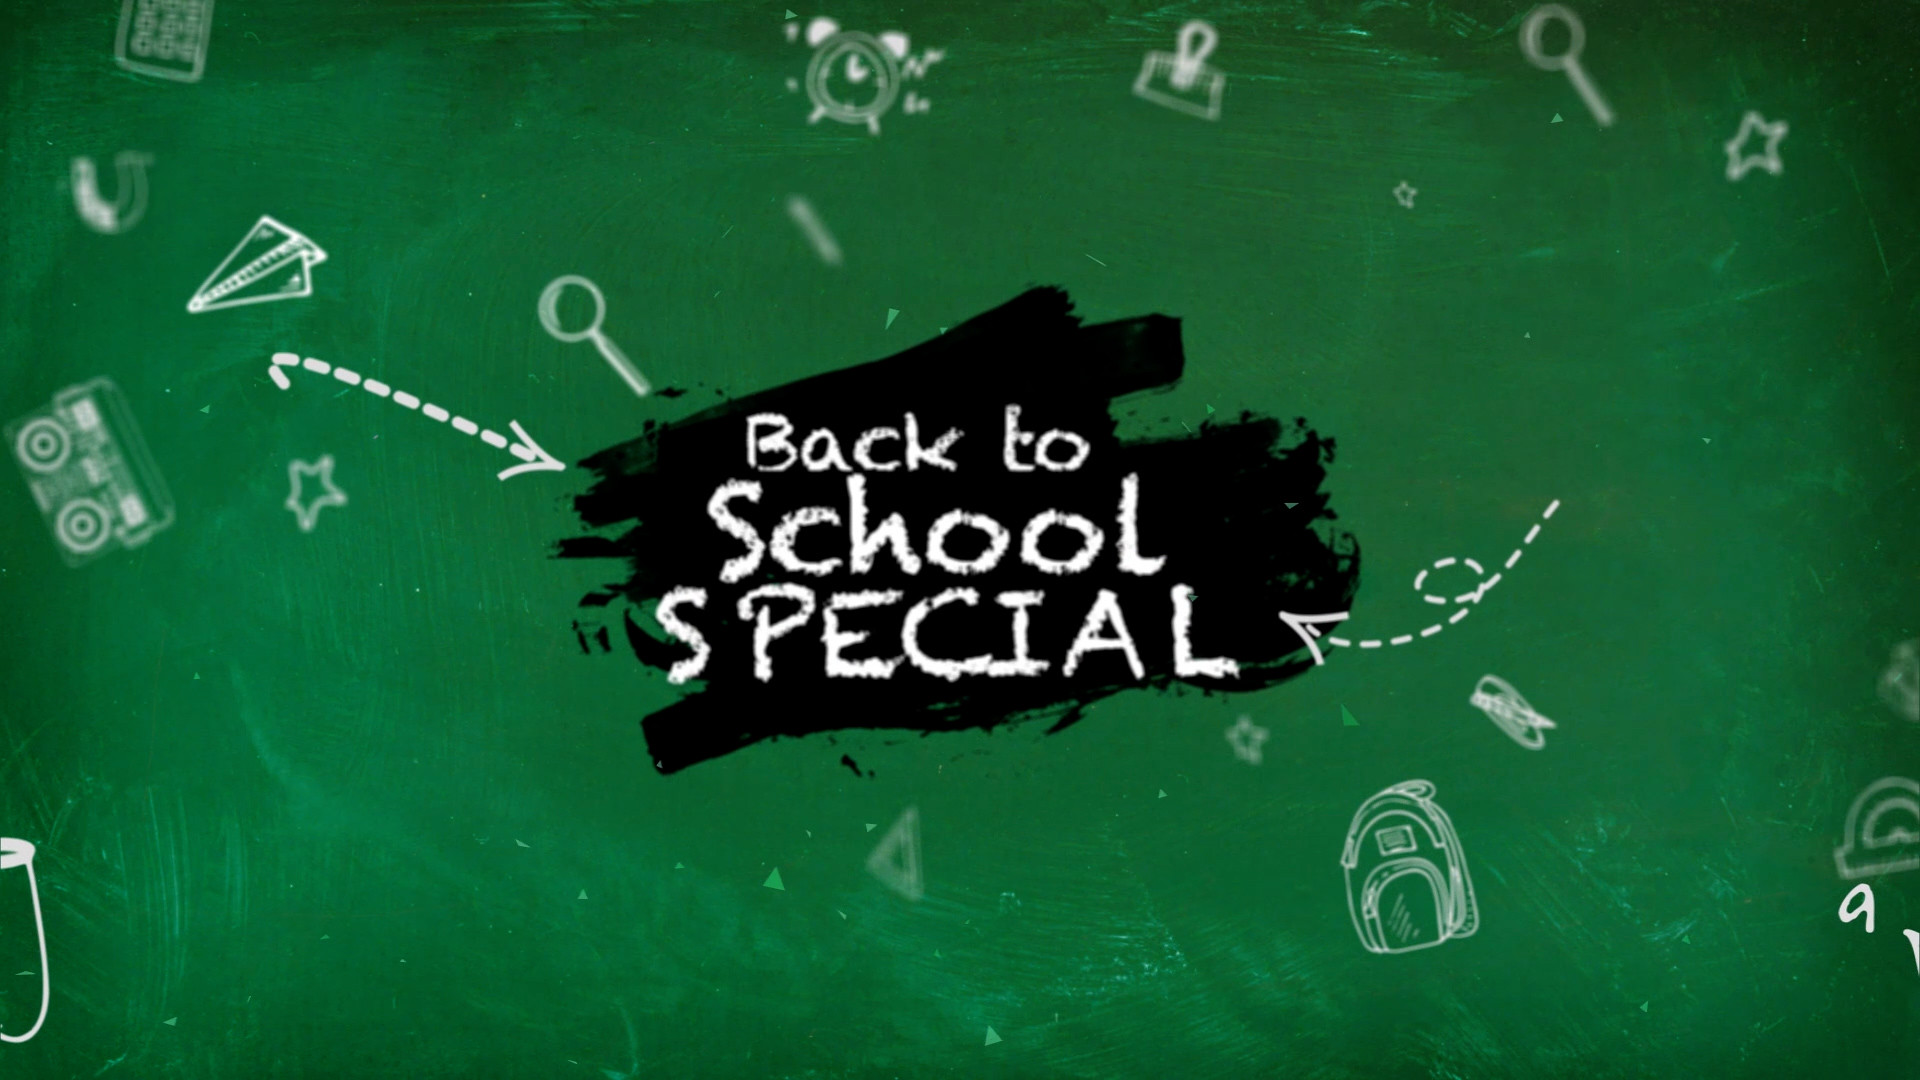 Back-to-School Special